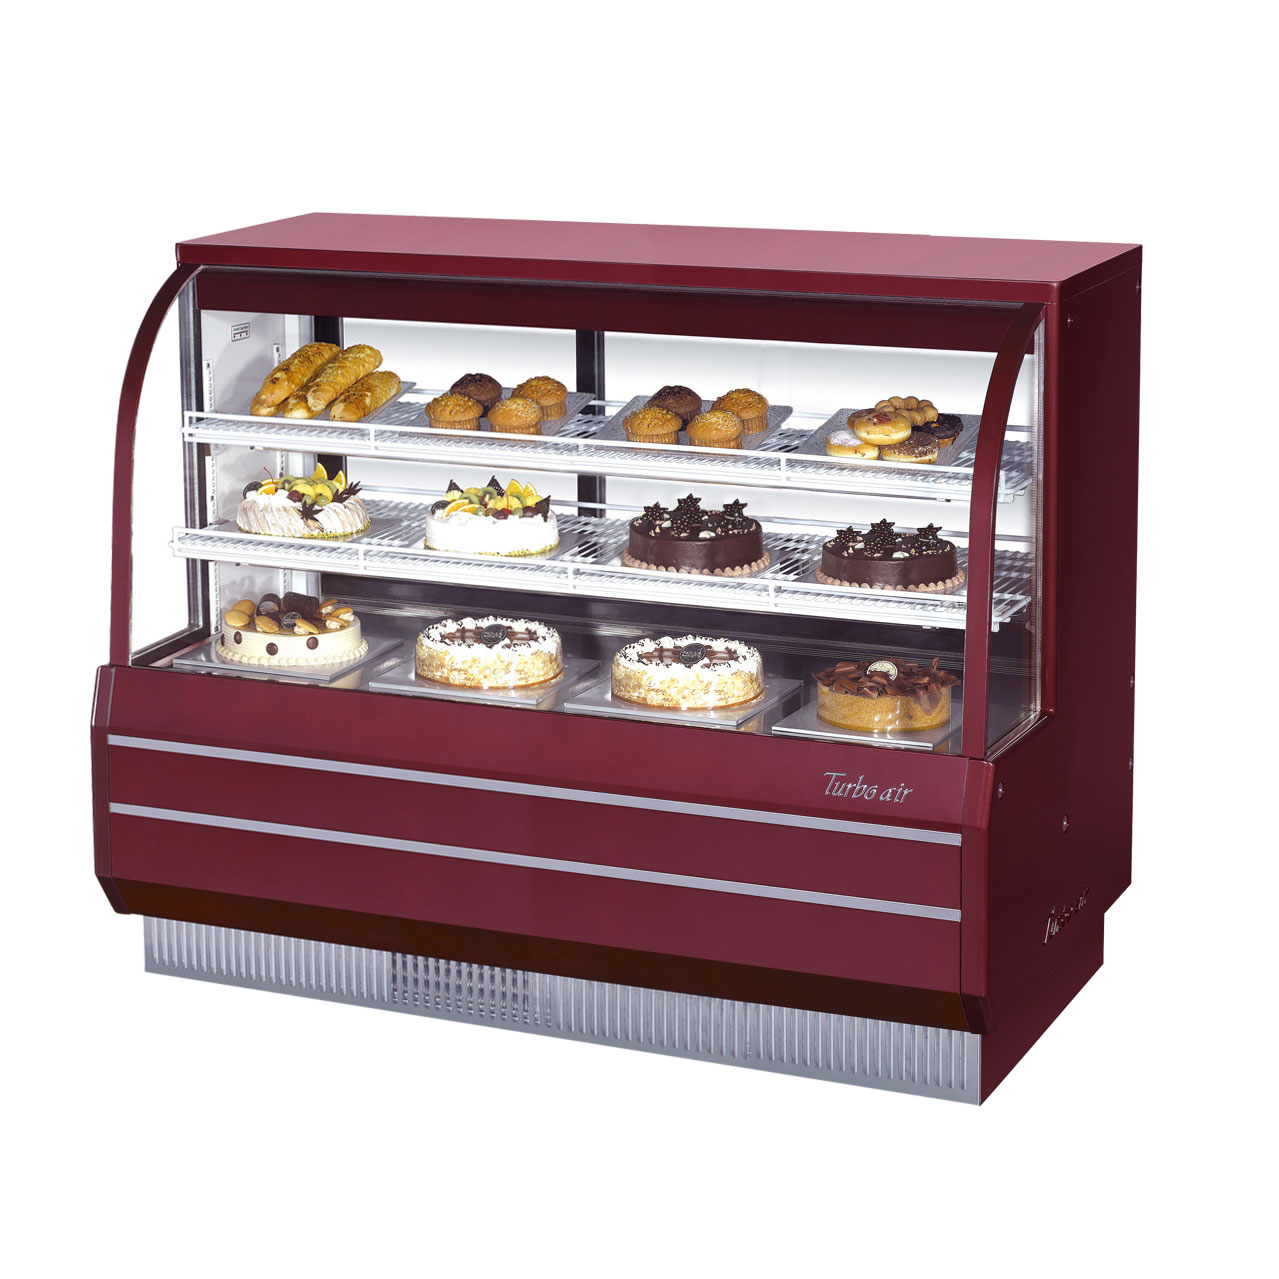 Turbo Air TCGB-60-R-N display case, refrigerated bakery